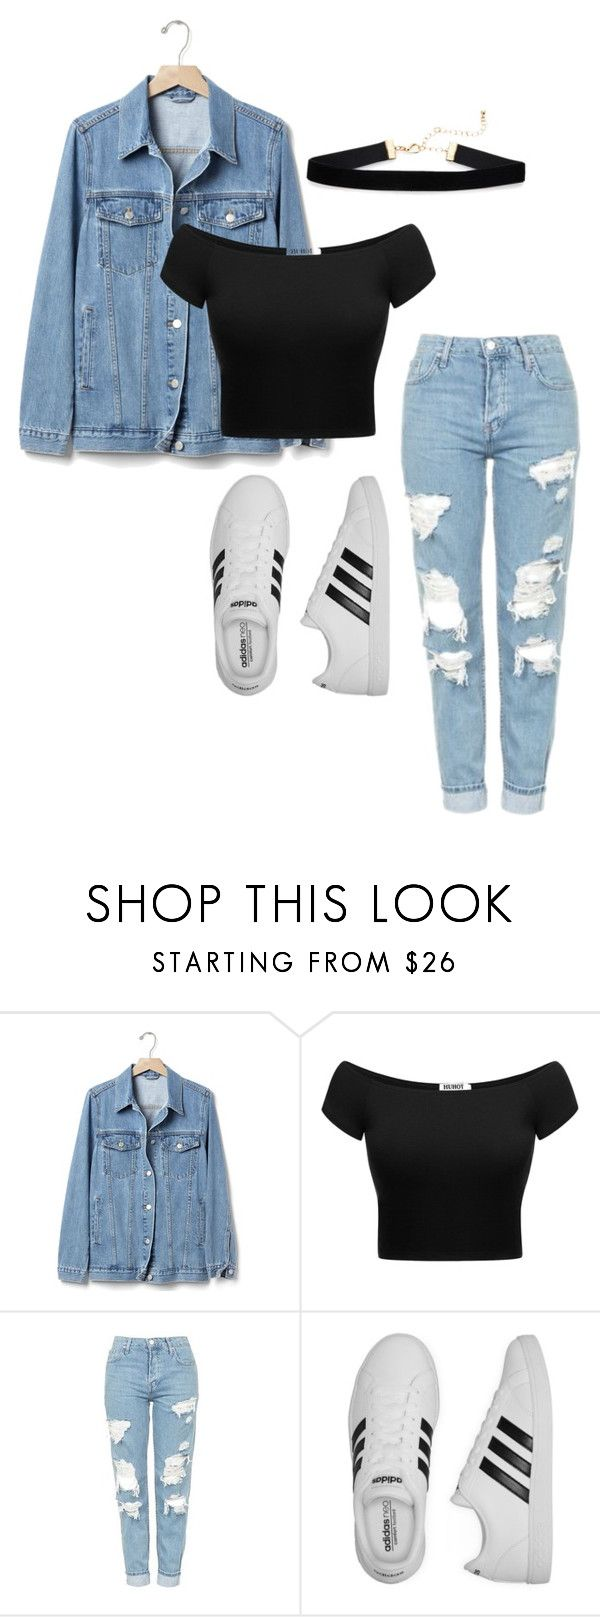 """wishcasu"" by joannachavez8 on Polyvore featuring Gap, Topshop and adidas"